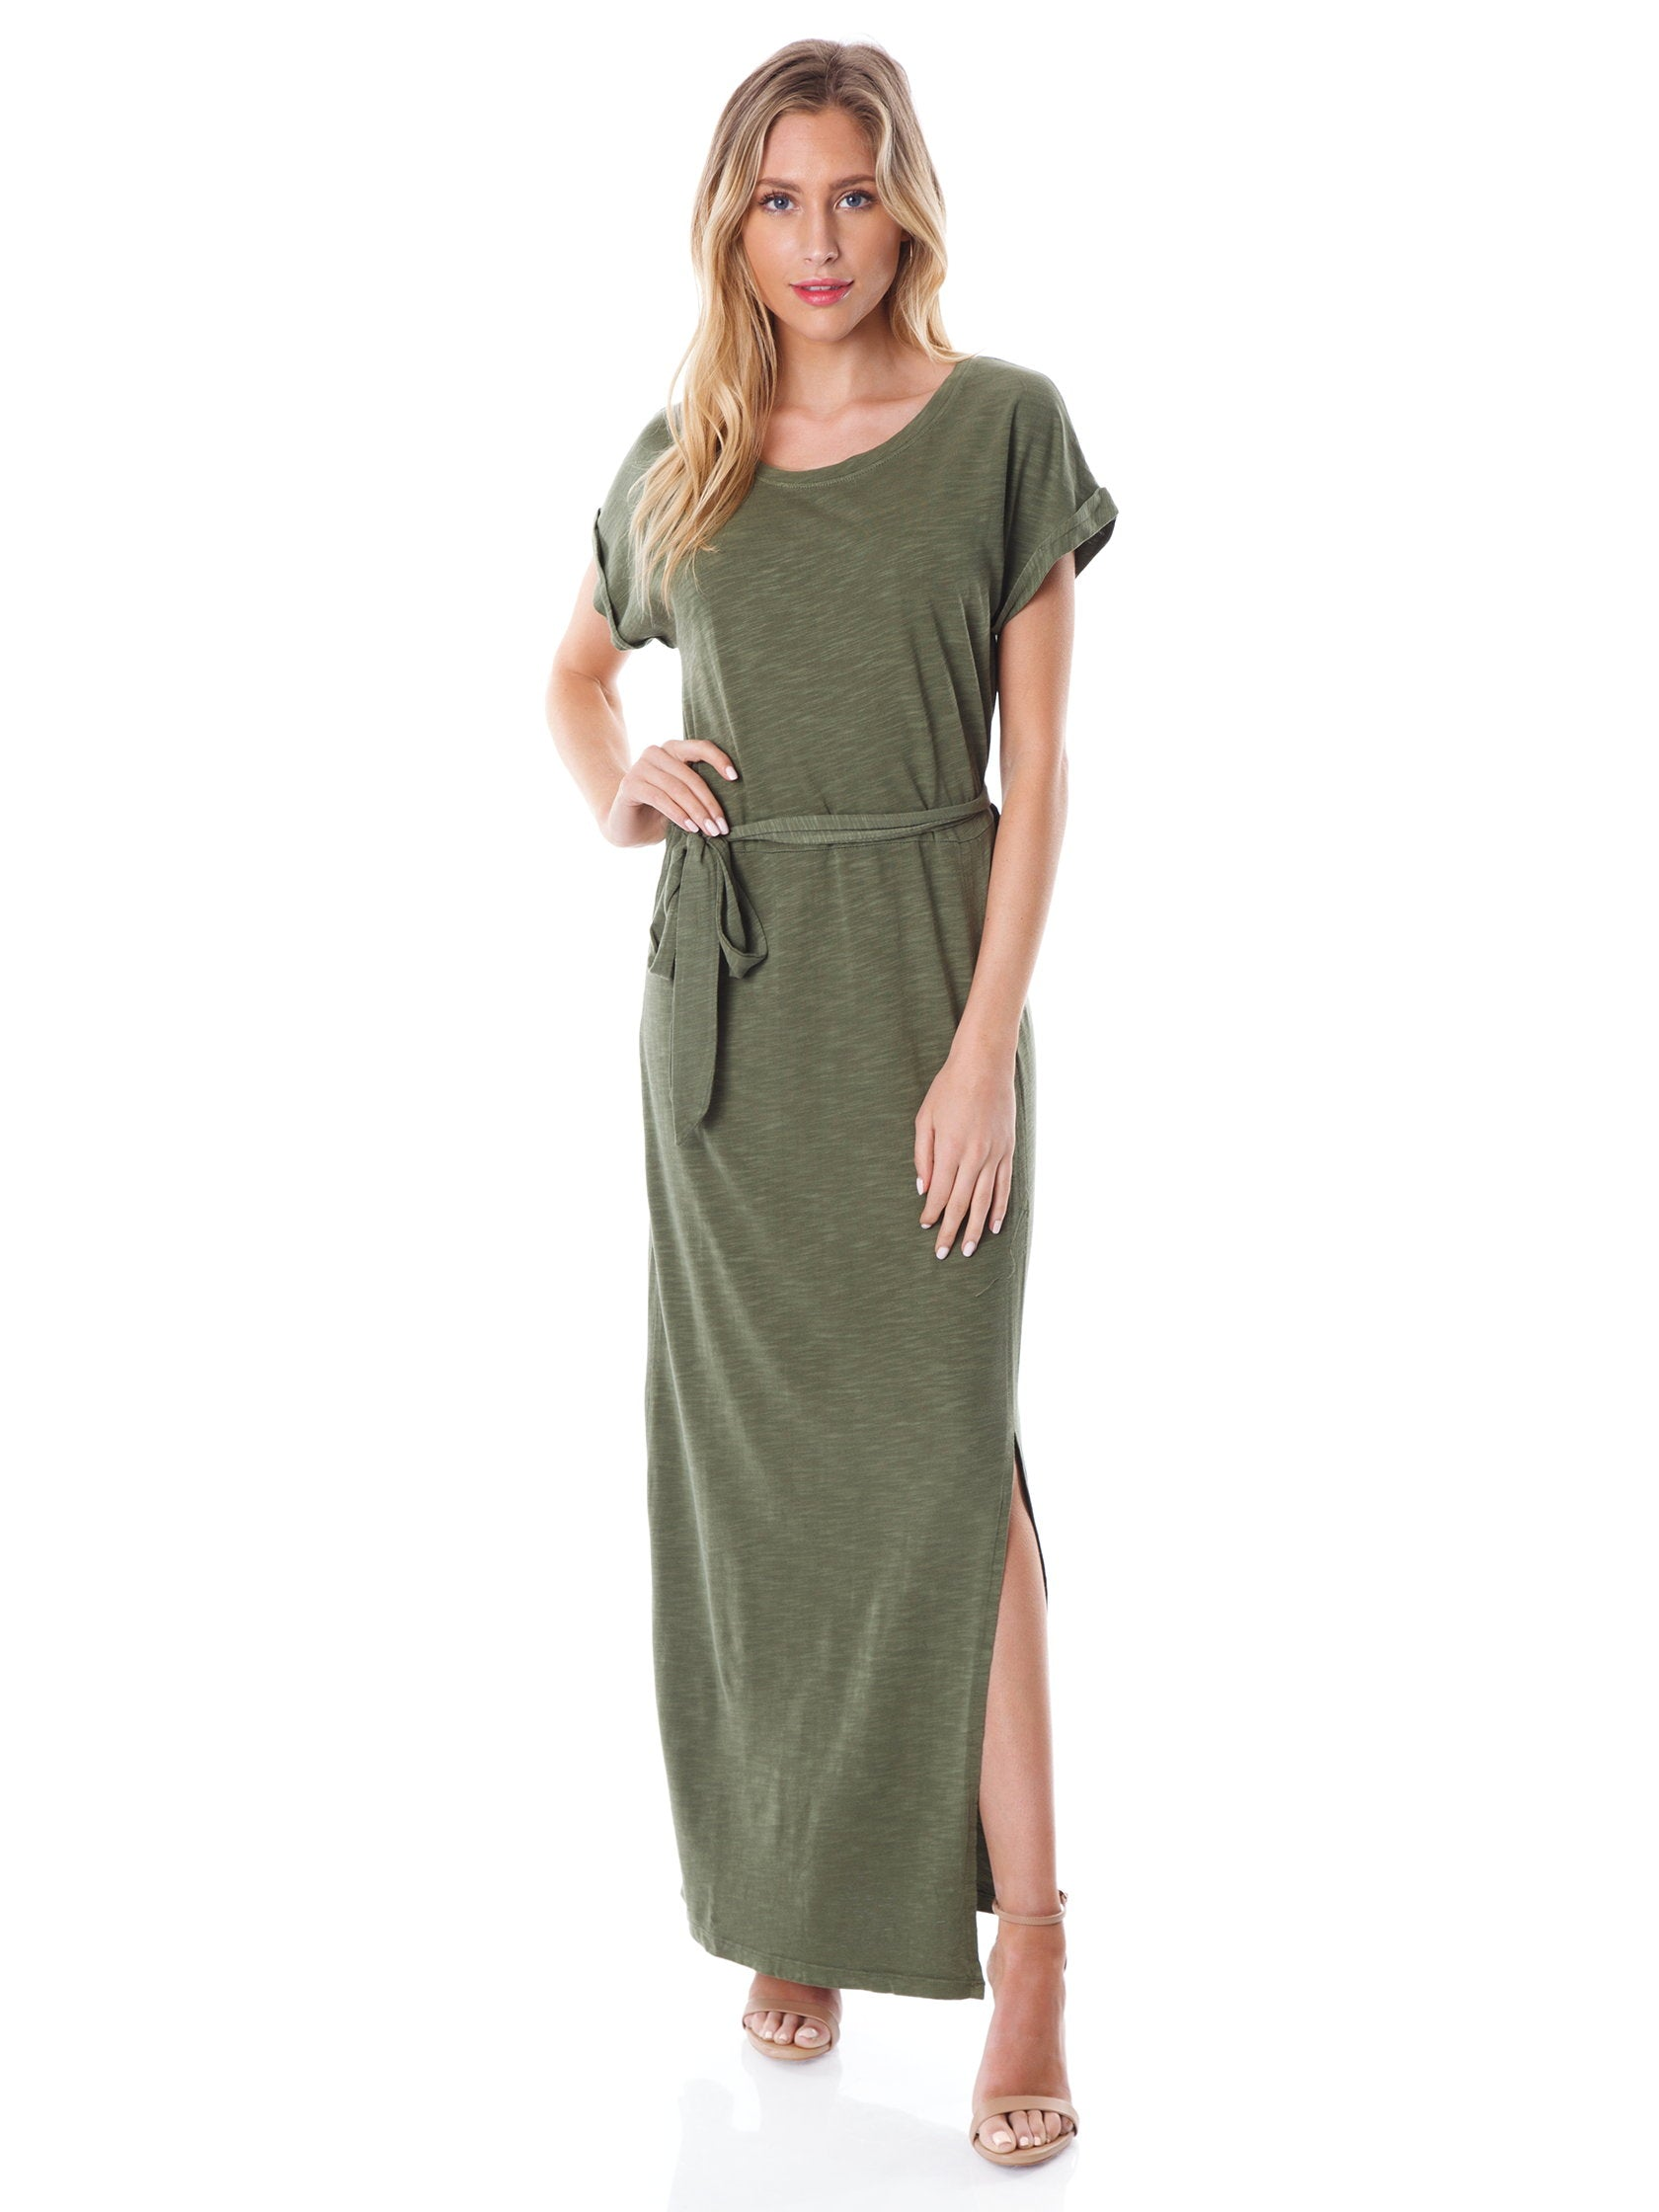 Girl outfit in a dress rental from SANCTUARY called Isle T-shirt Maxi Dress